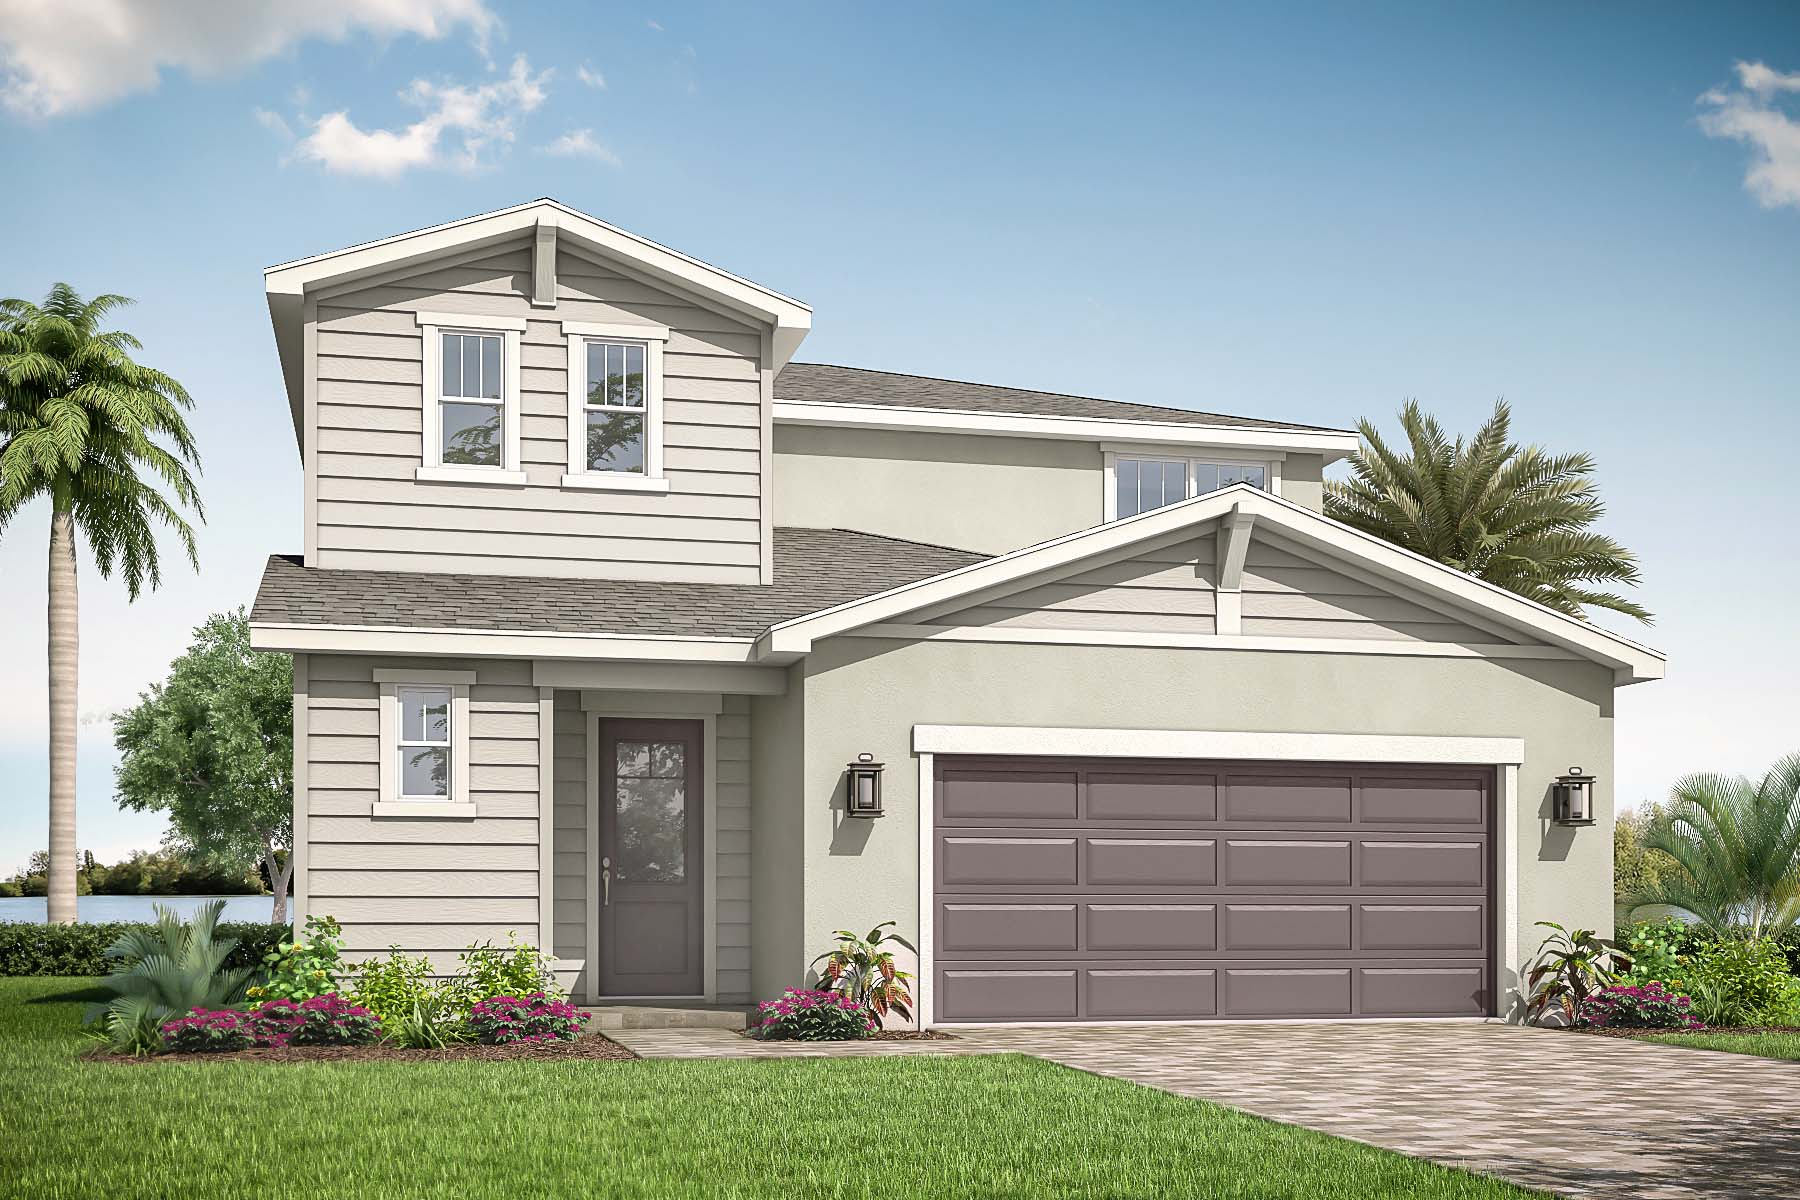 Danbury Plan Elevation Front at Tradition - Manderlie in Port St. Lucie Florida by Mattamy Homes